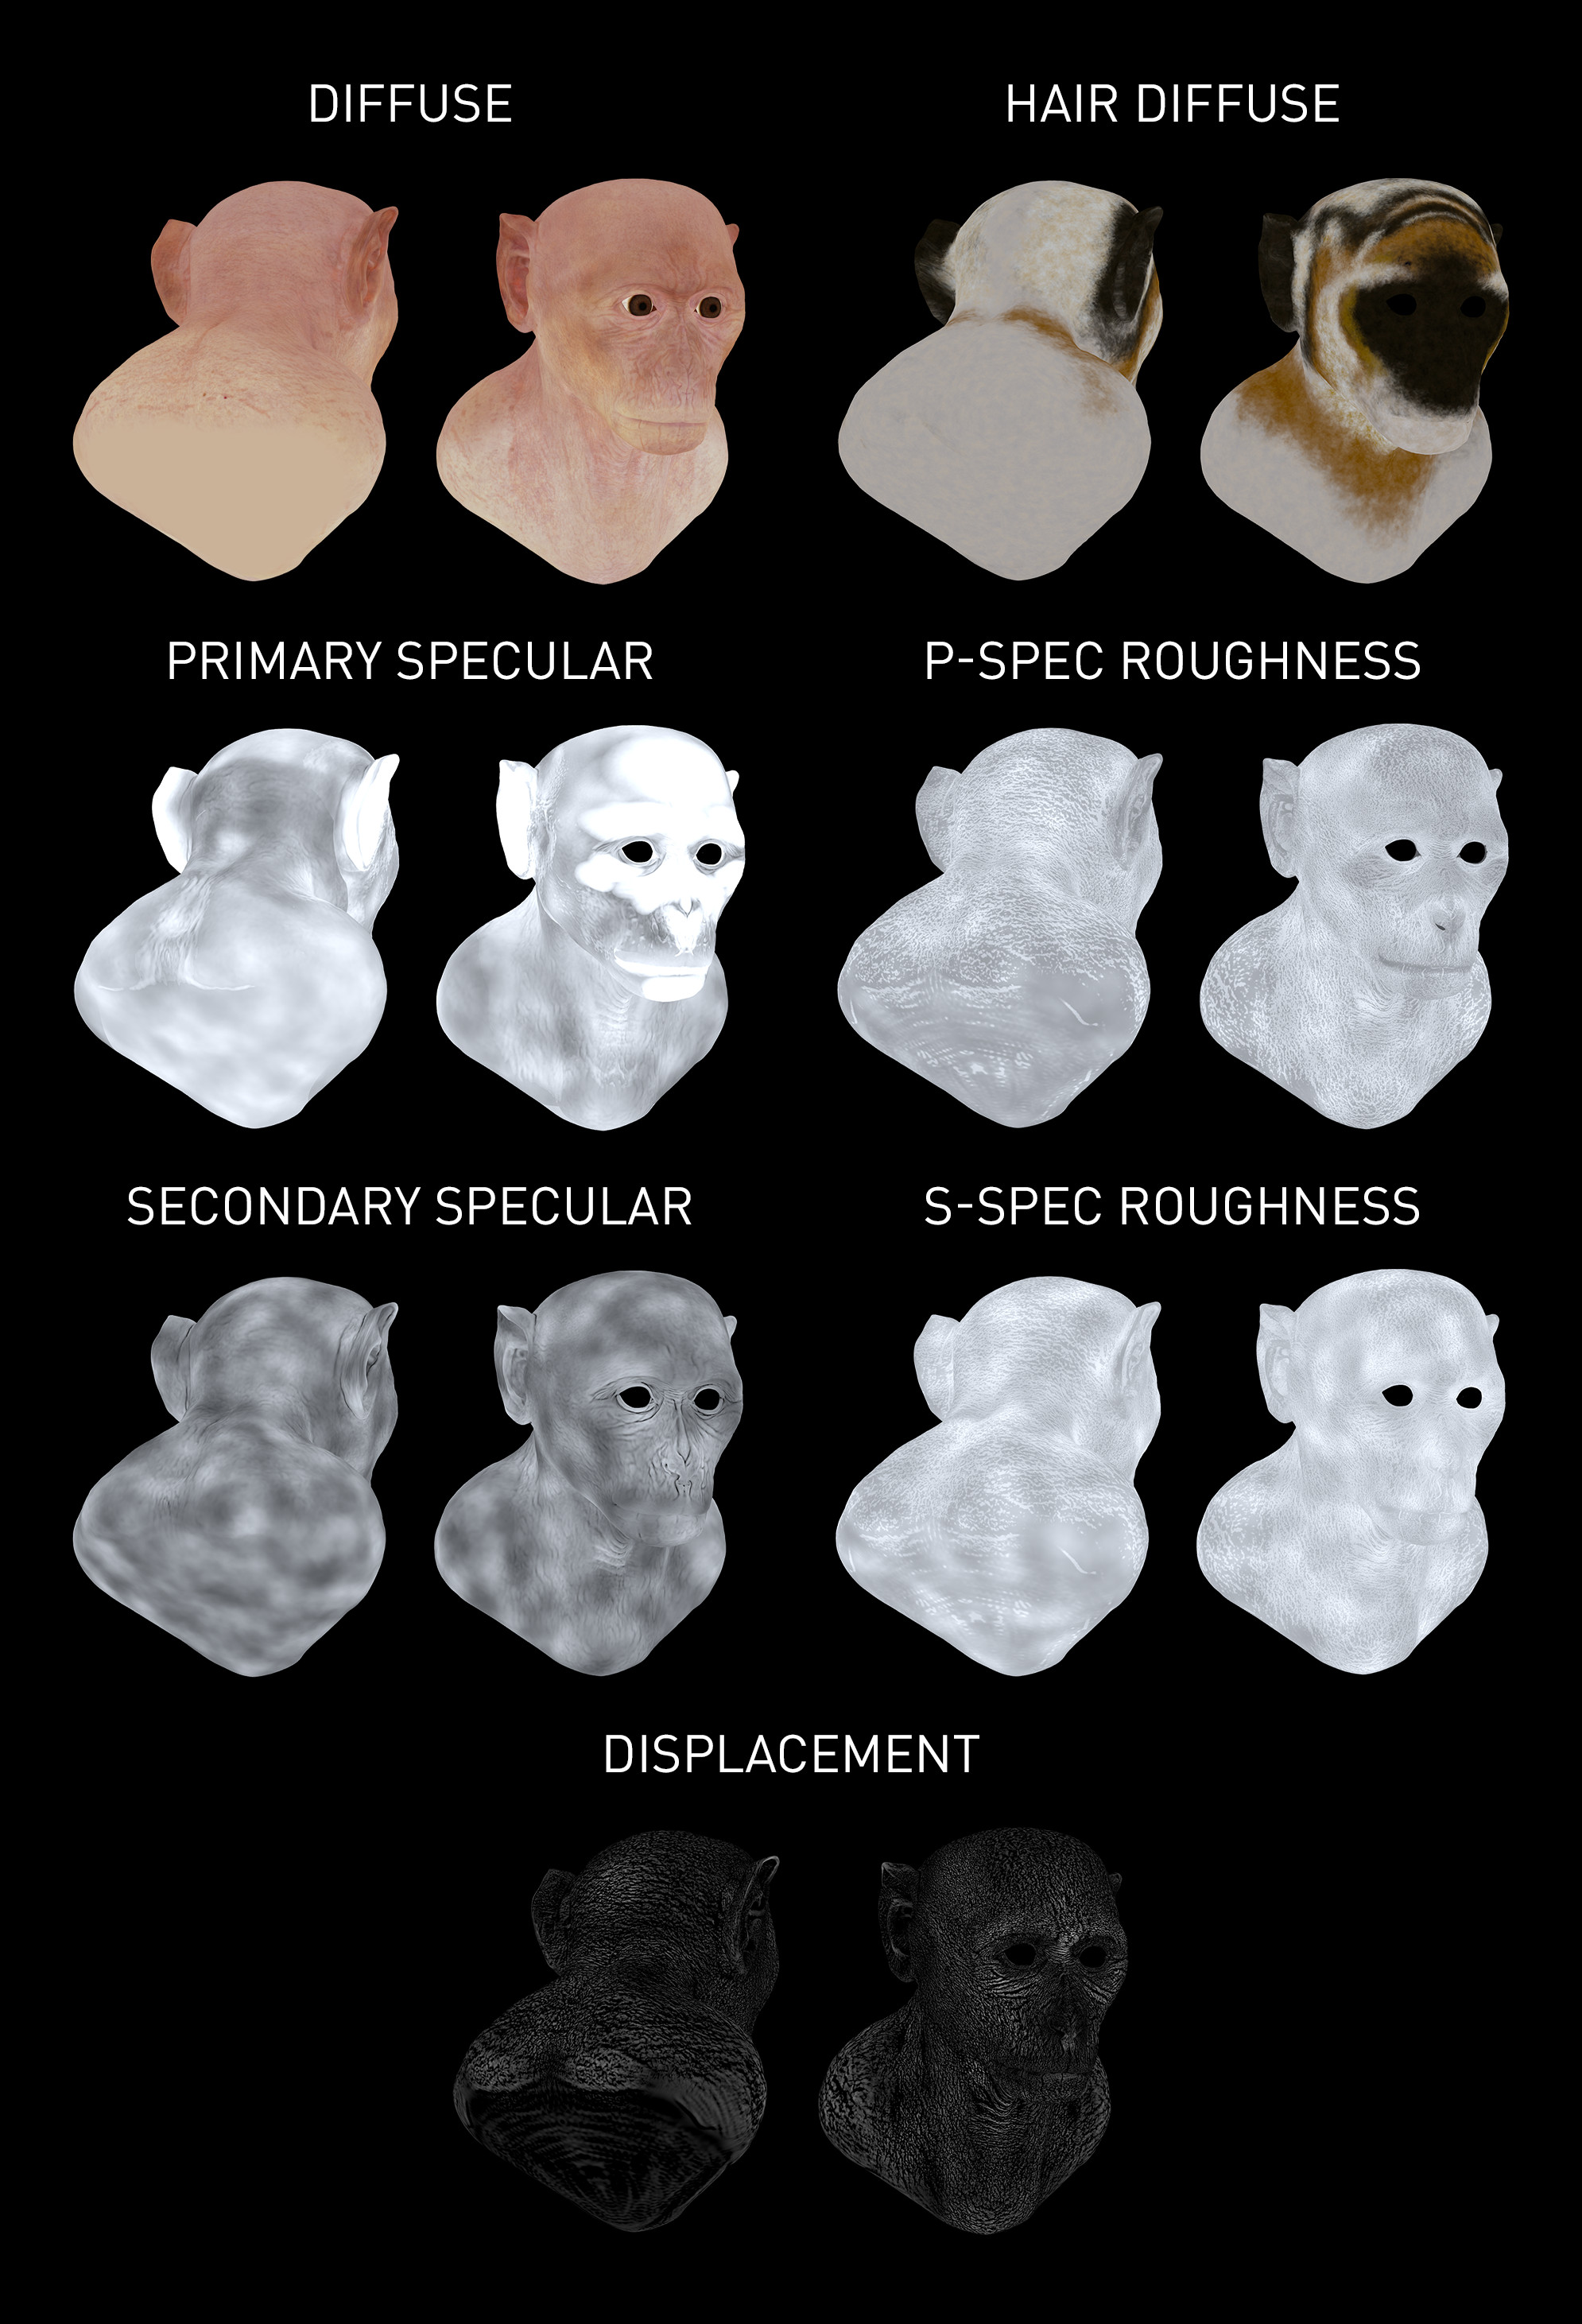 V-Ray alSurface Shader was used for the skin